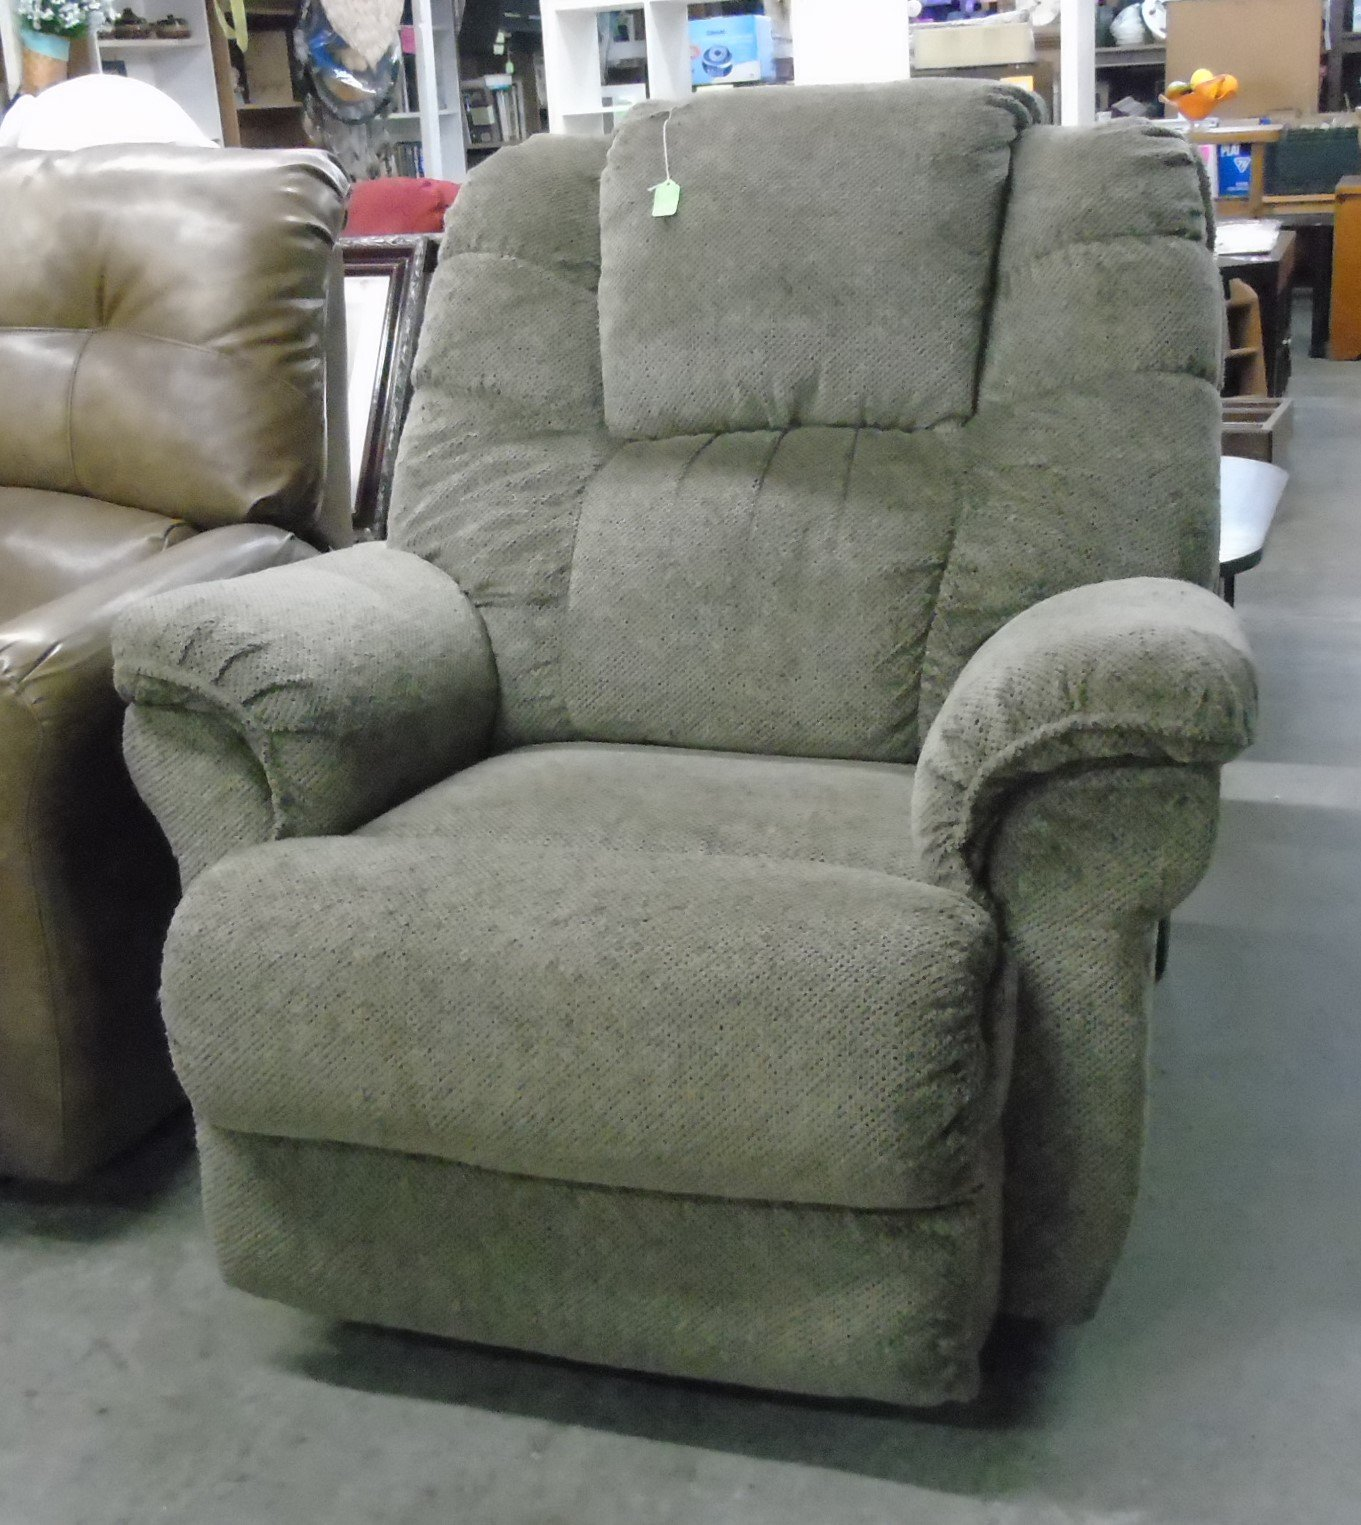 navana revolving chair price in bangladesh gaming design living room furniture new and nearly thrift shop